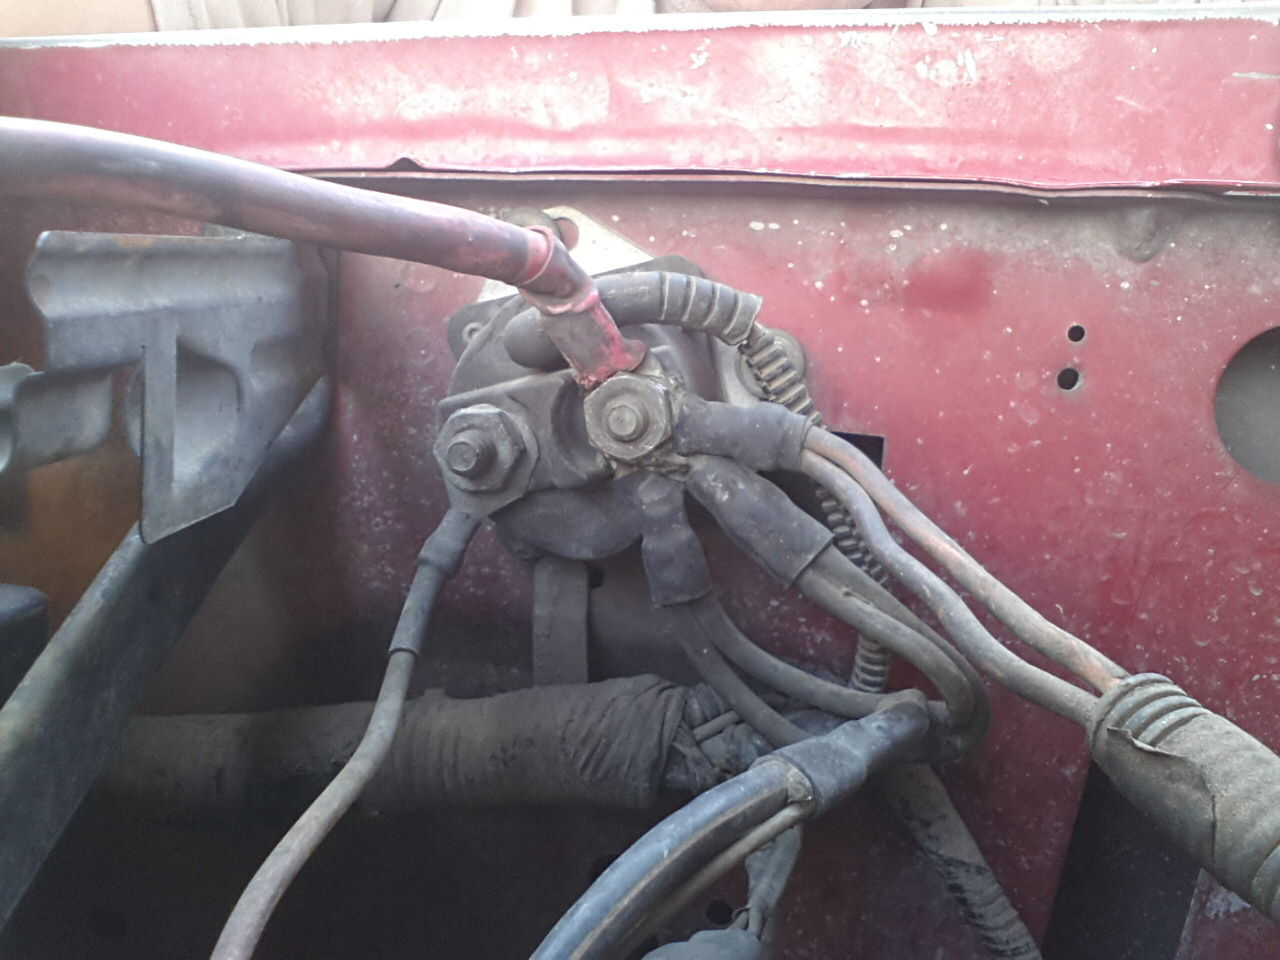 F250 7 3l wiring diagram blower on 1993 f350 7 3 fender solenoid wiring ford truck enthusiasts forums 1996 Ford F-250 Powerstroke 7.3L Wiring 2002 7.3 Powerstroke Schematic